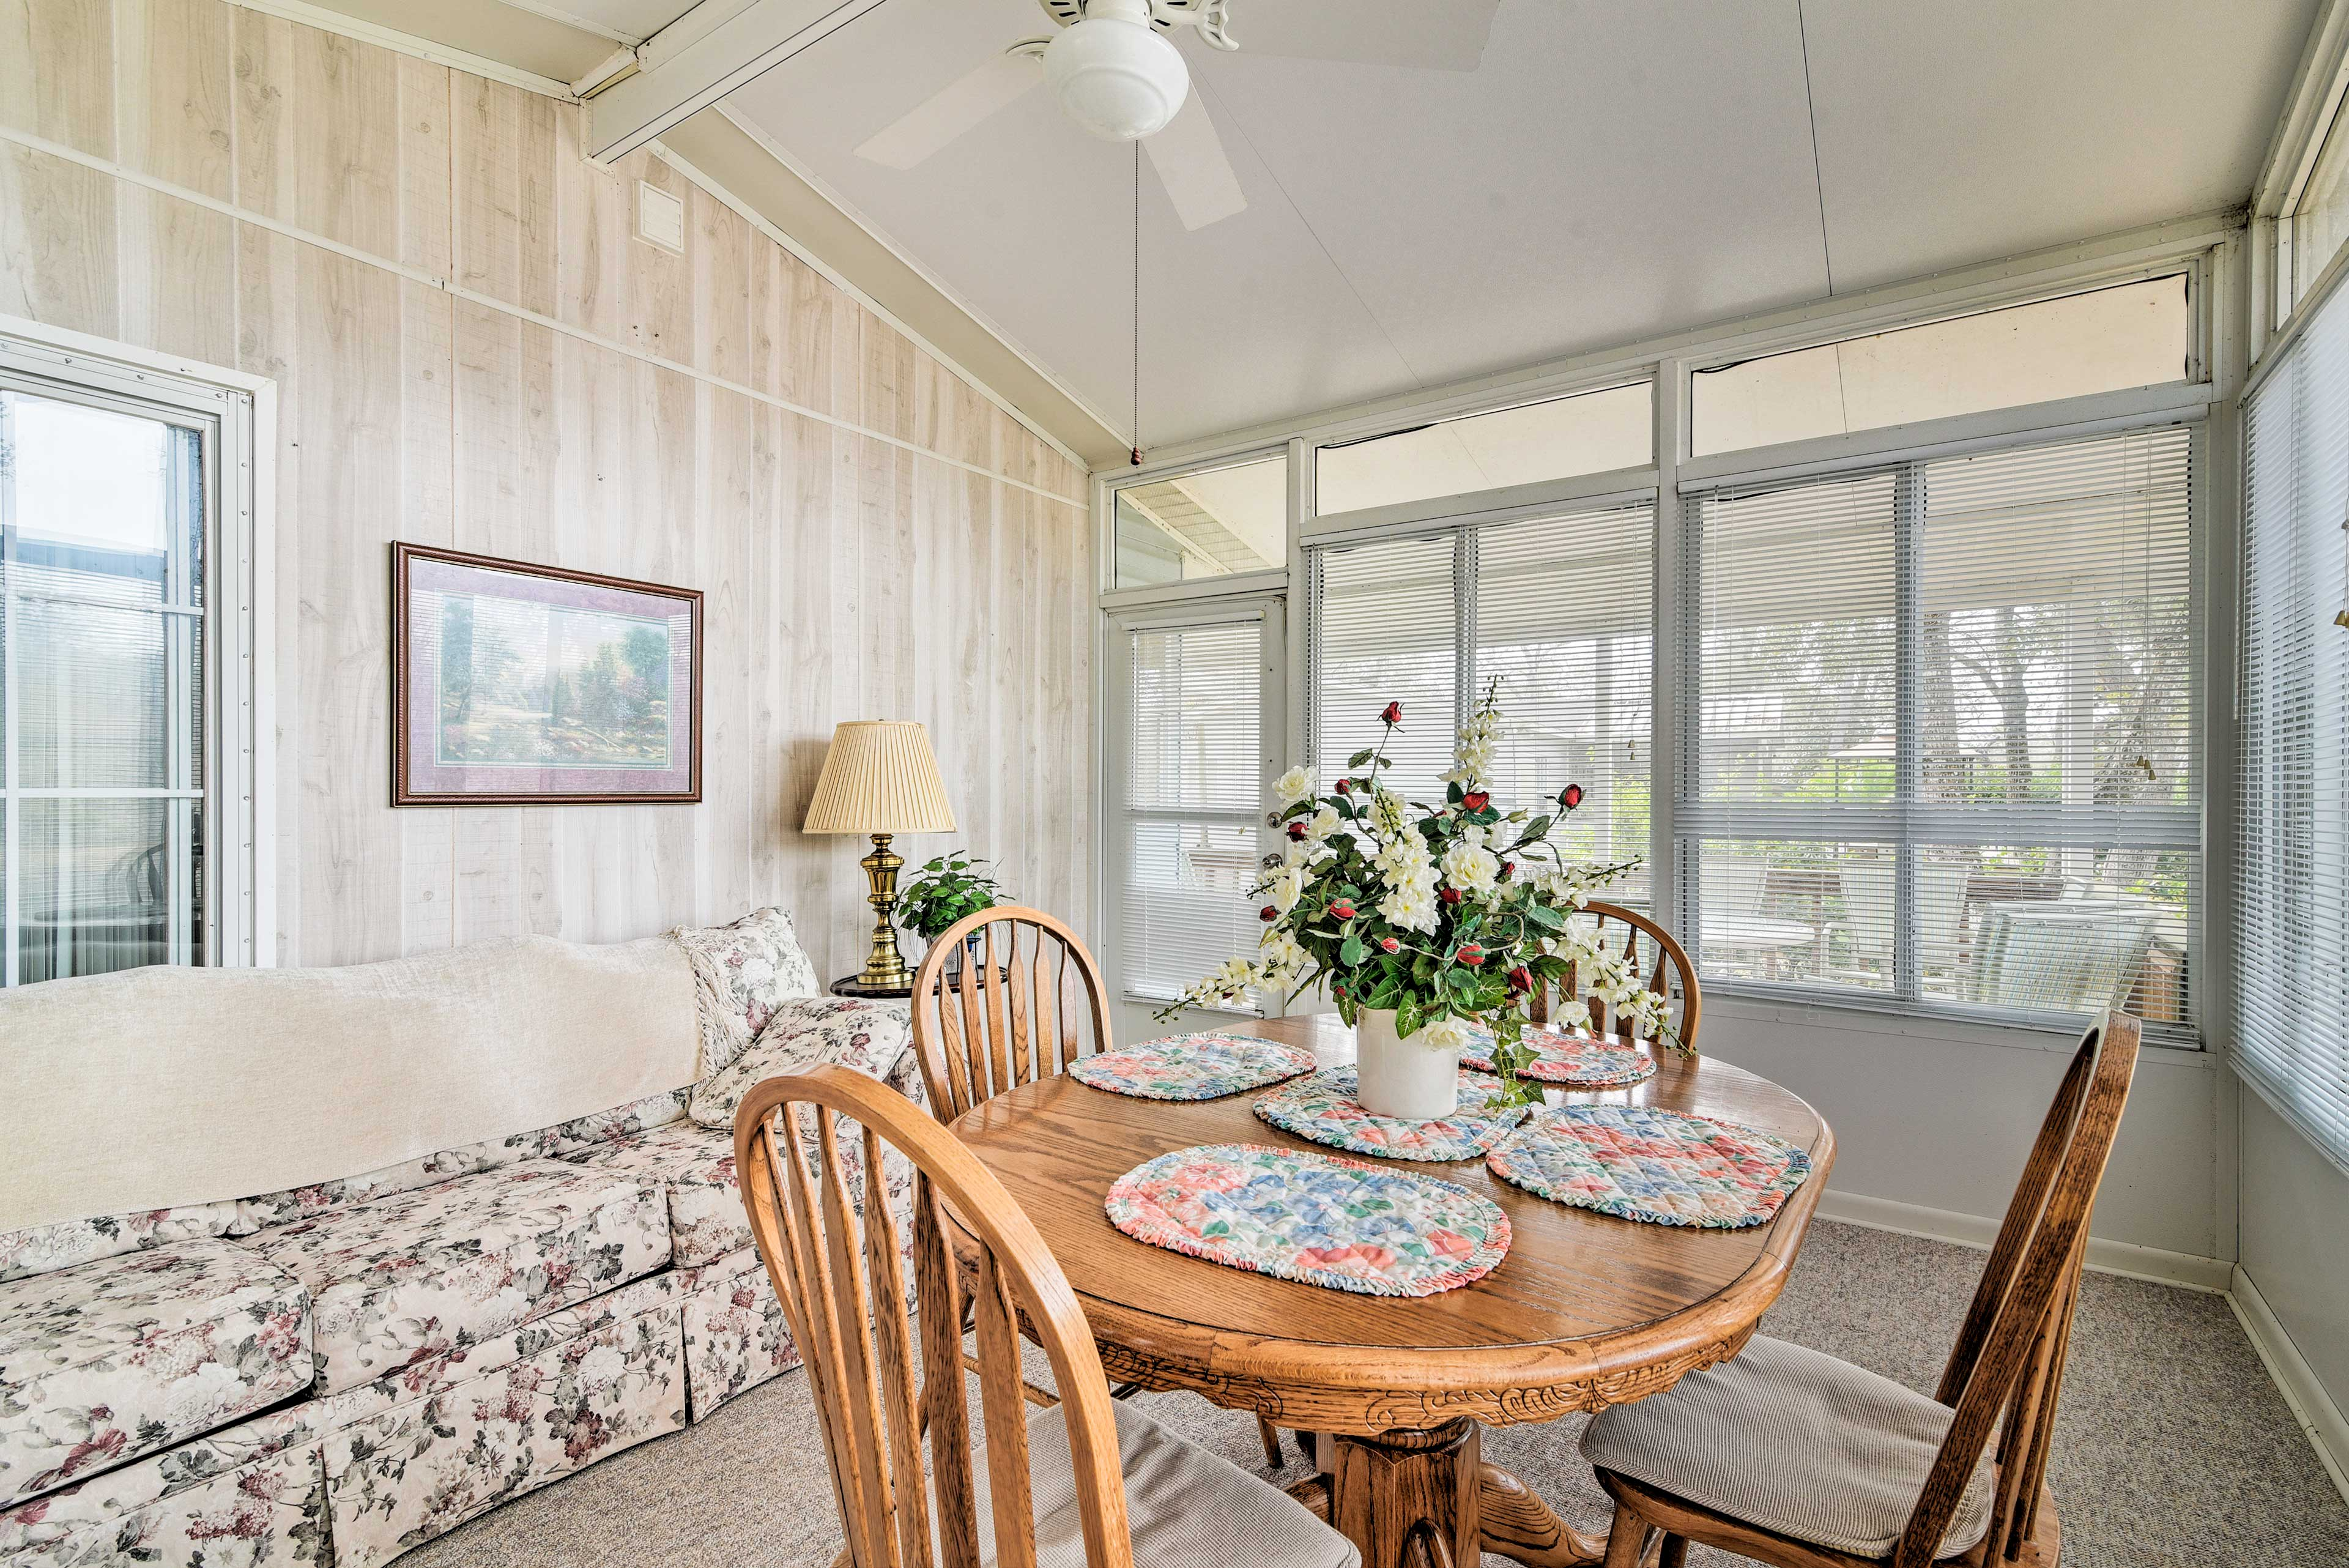 A bright and cheery sun room will have you feeling right at home.